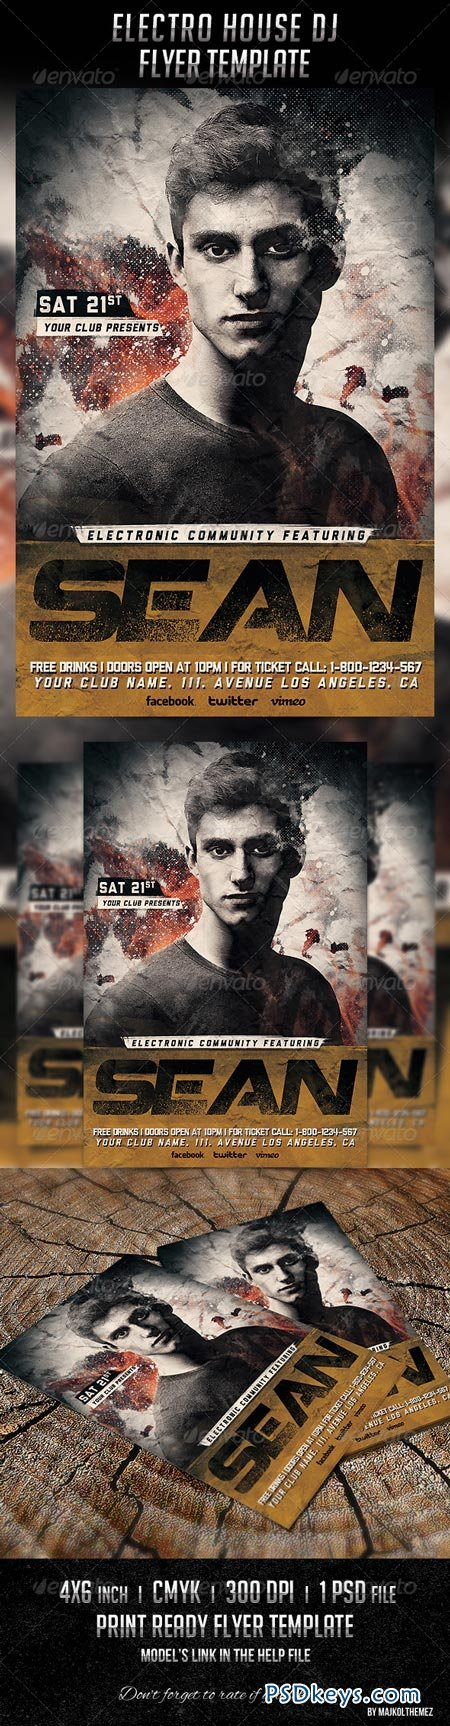 Electro House Dj Flyer Template 6674010